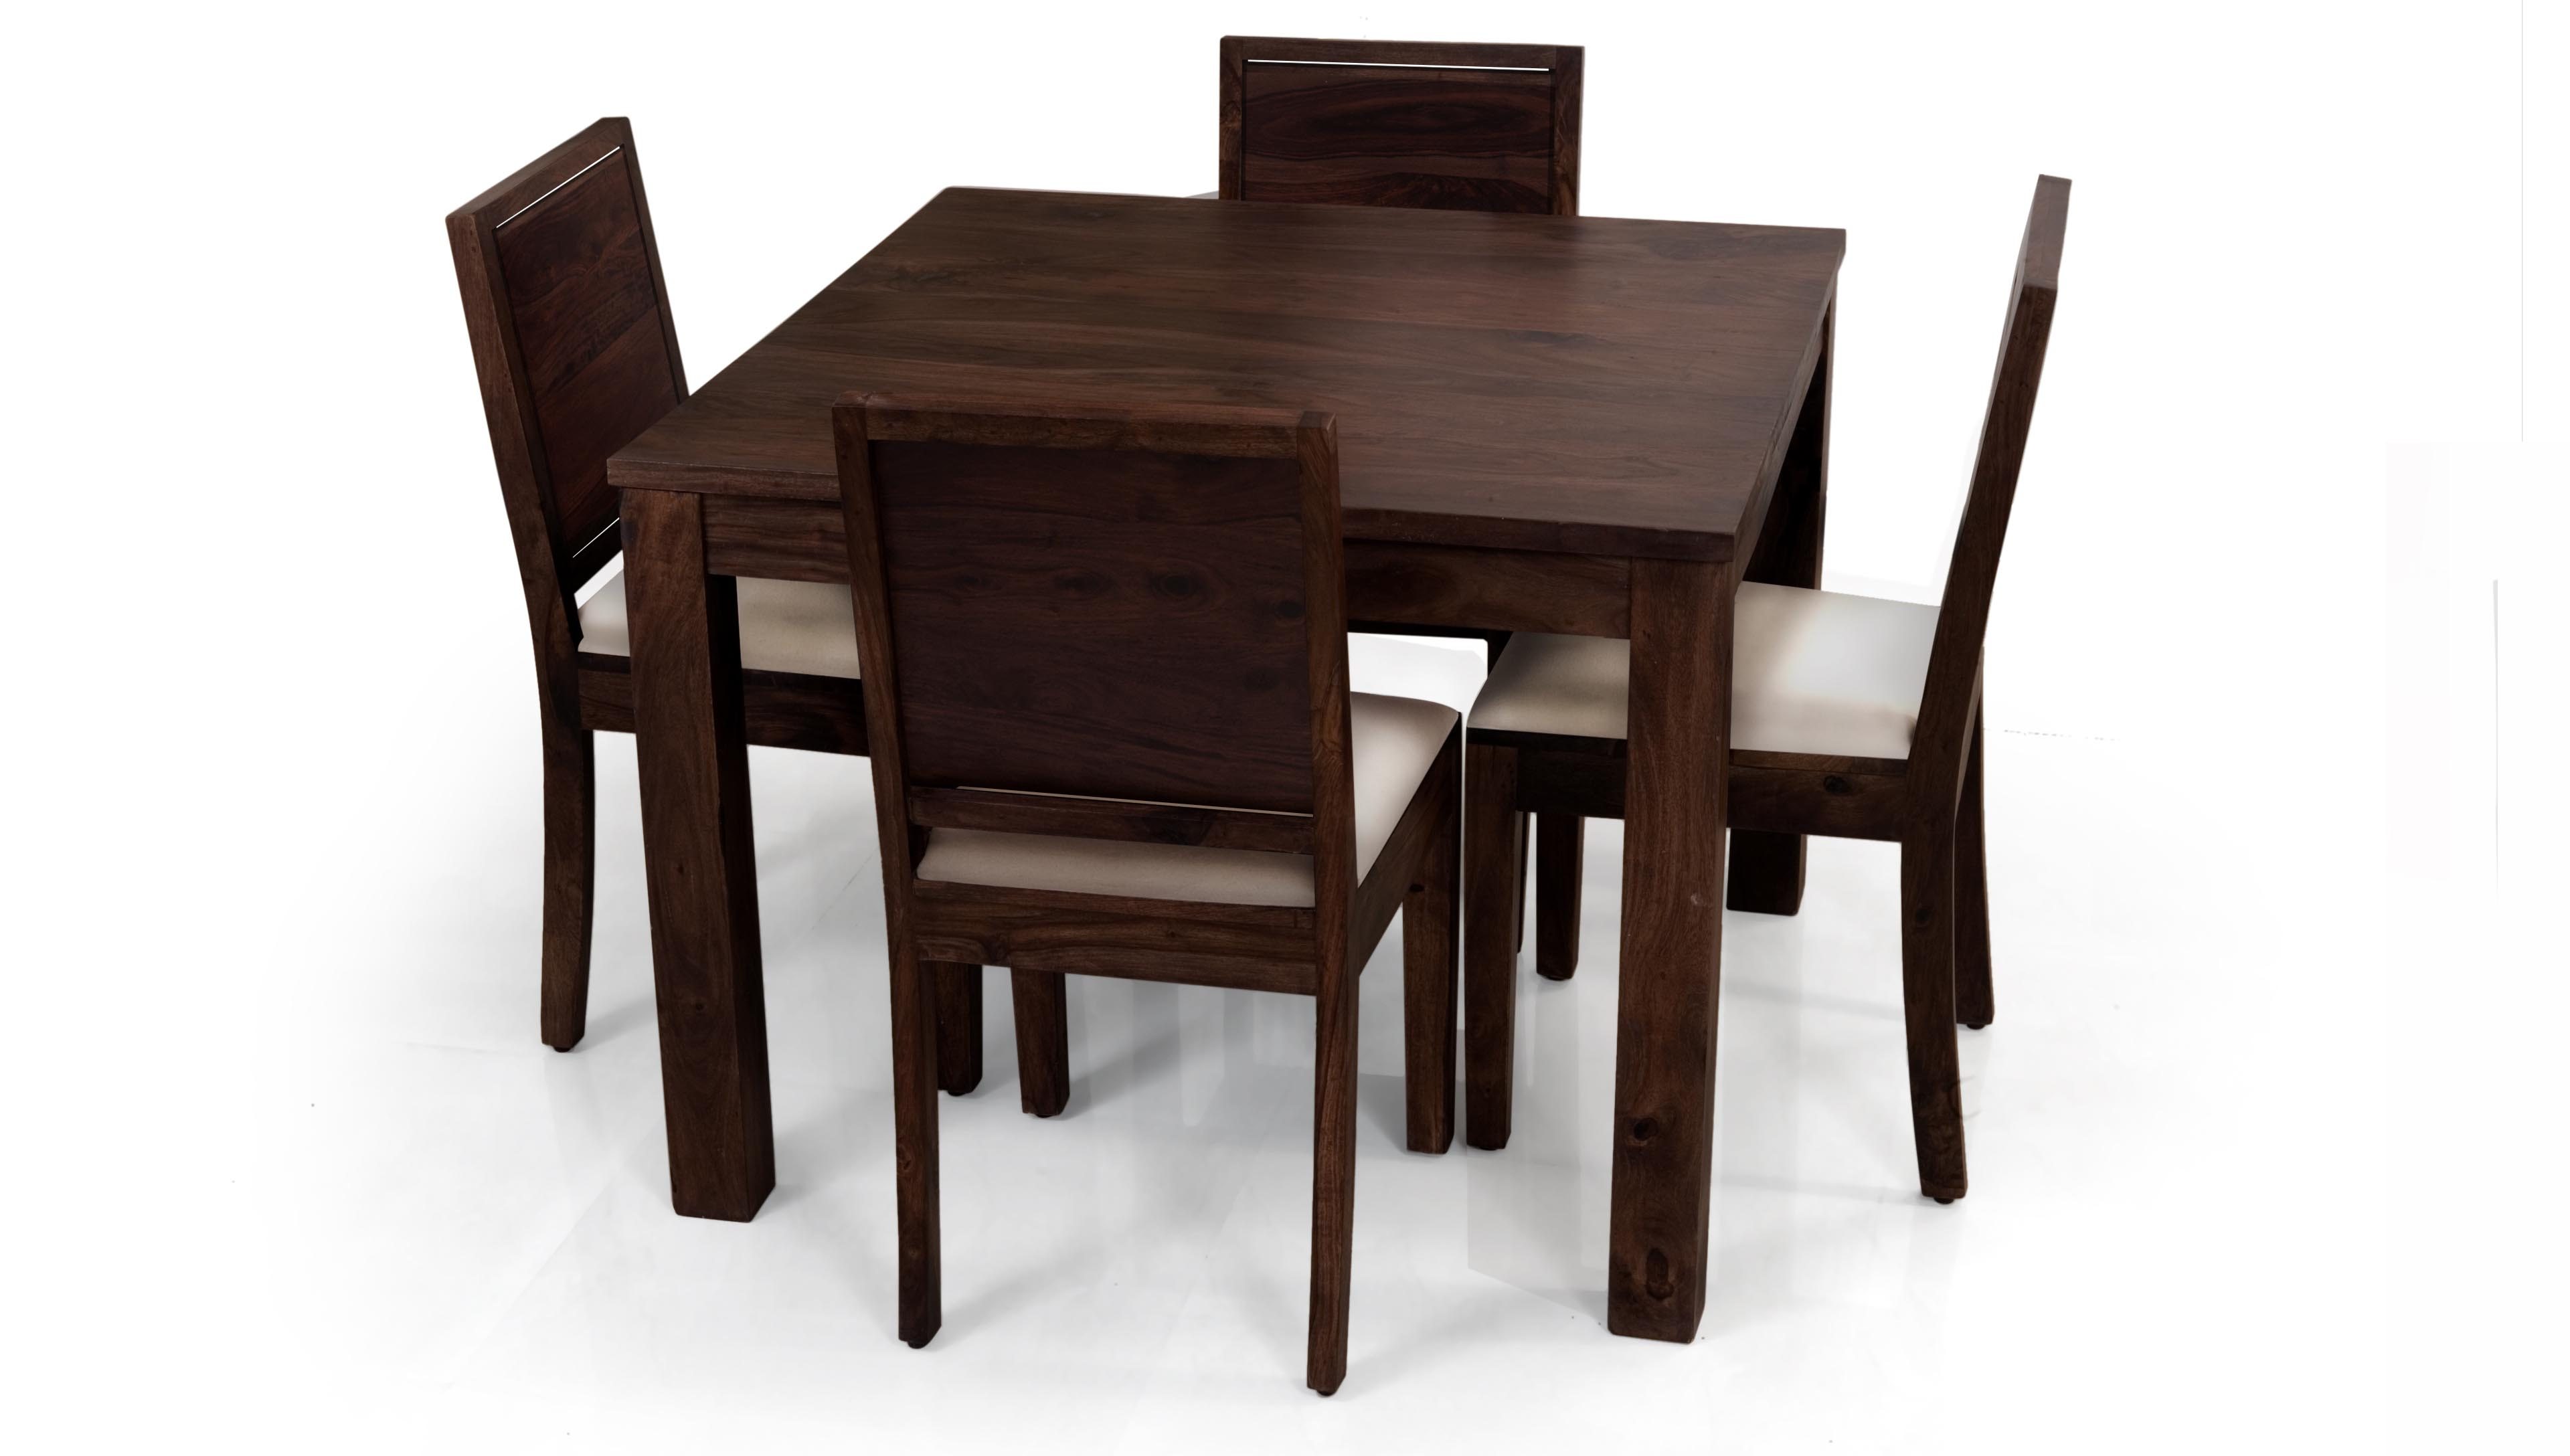 Square Dining Table For 4 HomesFeed : Casual Wooden Design Of Square Dining Room Table WIth Its 4 Chairs from homesfeed.com size 3840 x 2176 jpeg 241kB